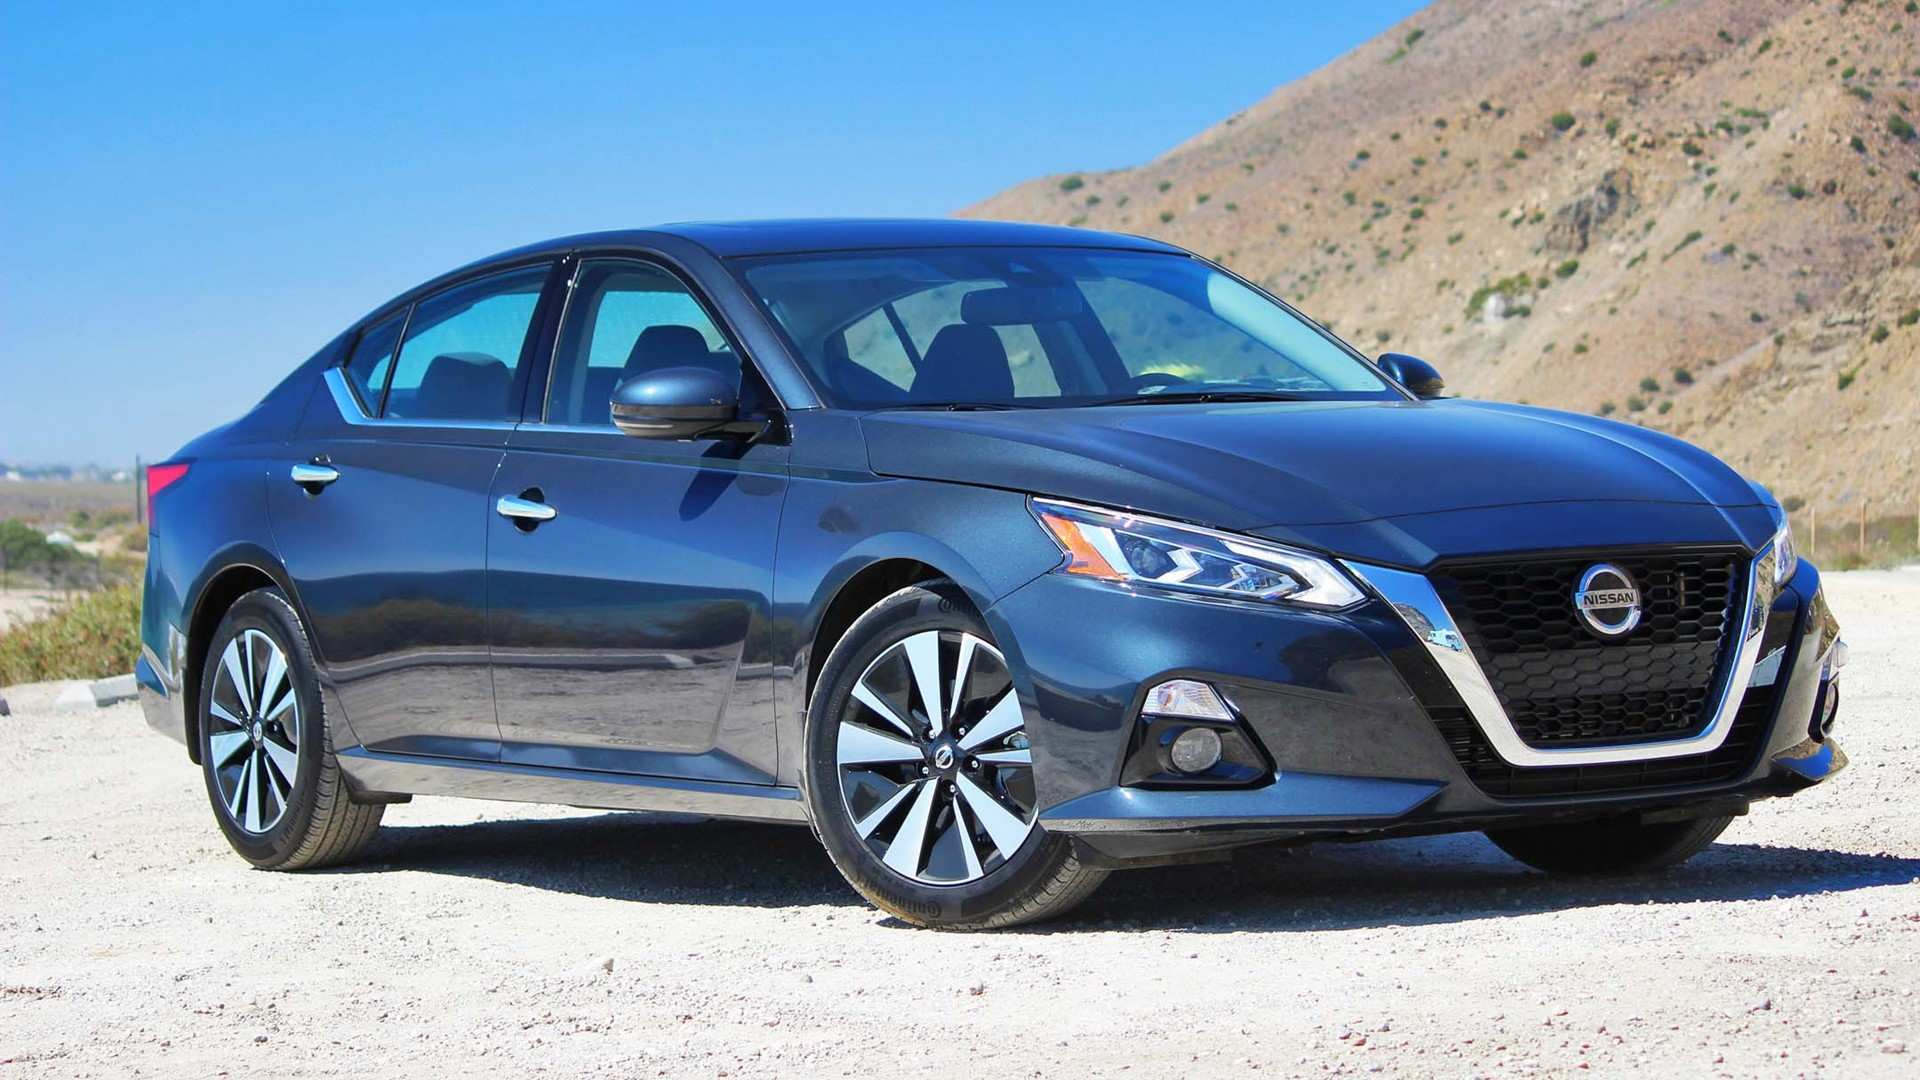 81 The Best Nissan Altima 2019 First Drive